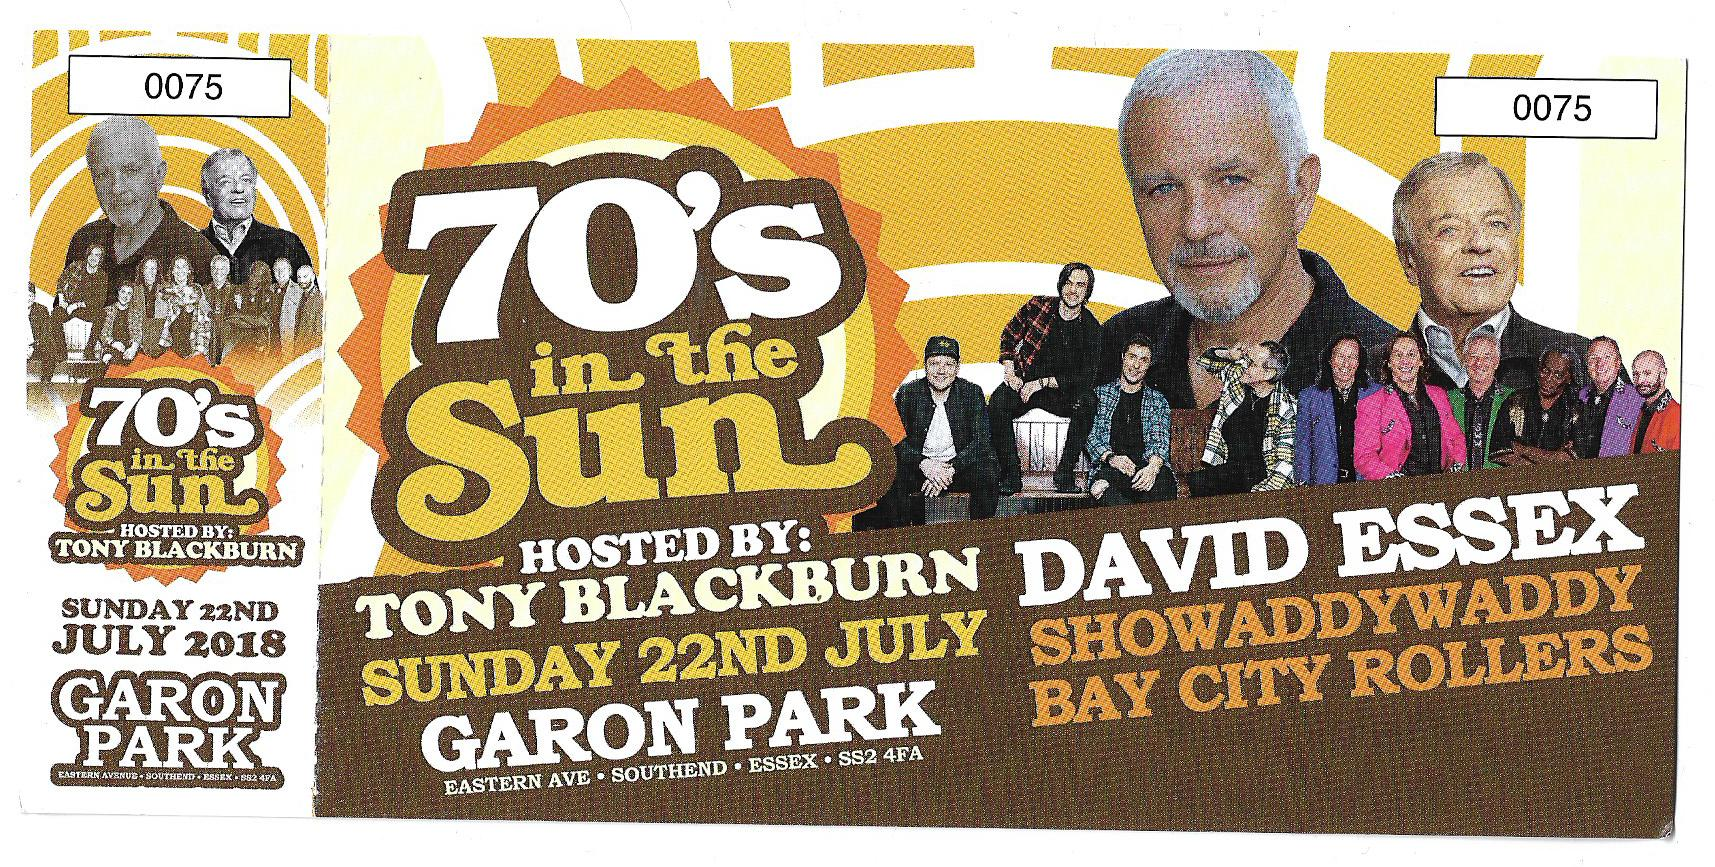 70,s in the sun charity event tickits for sale